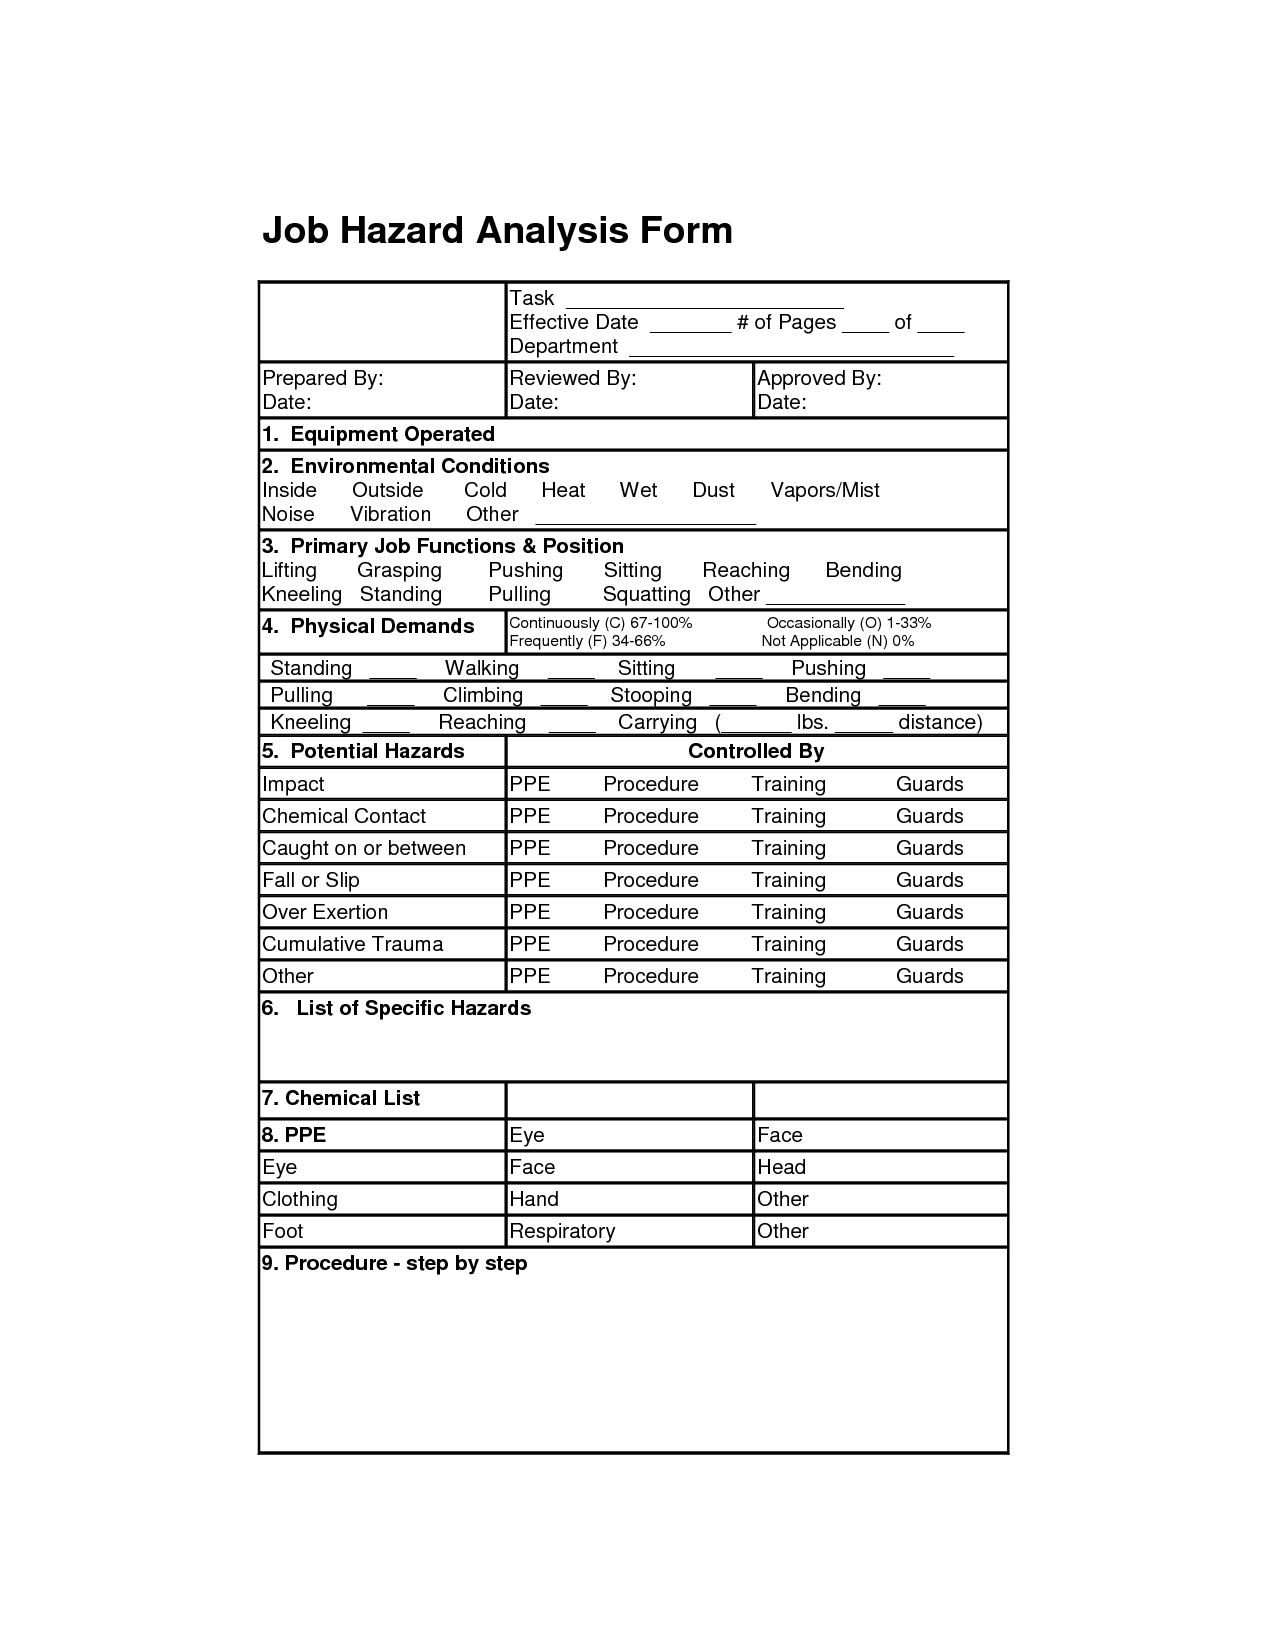 Job Hazard Analysis Form  Job Safety Analysis Template Free